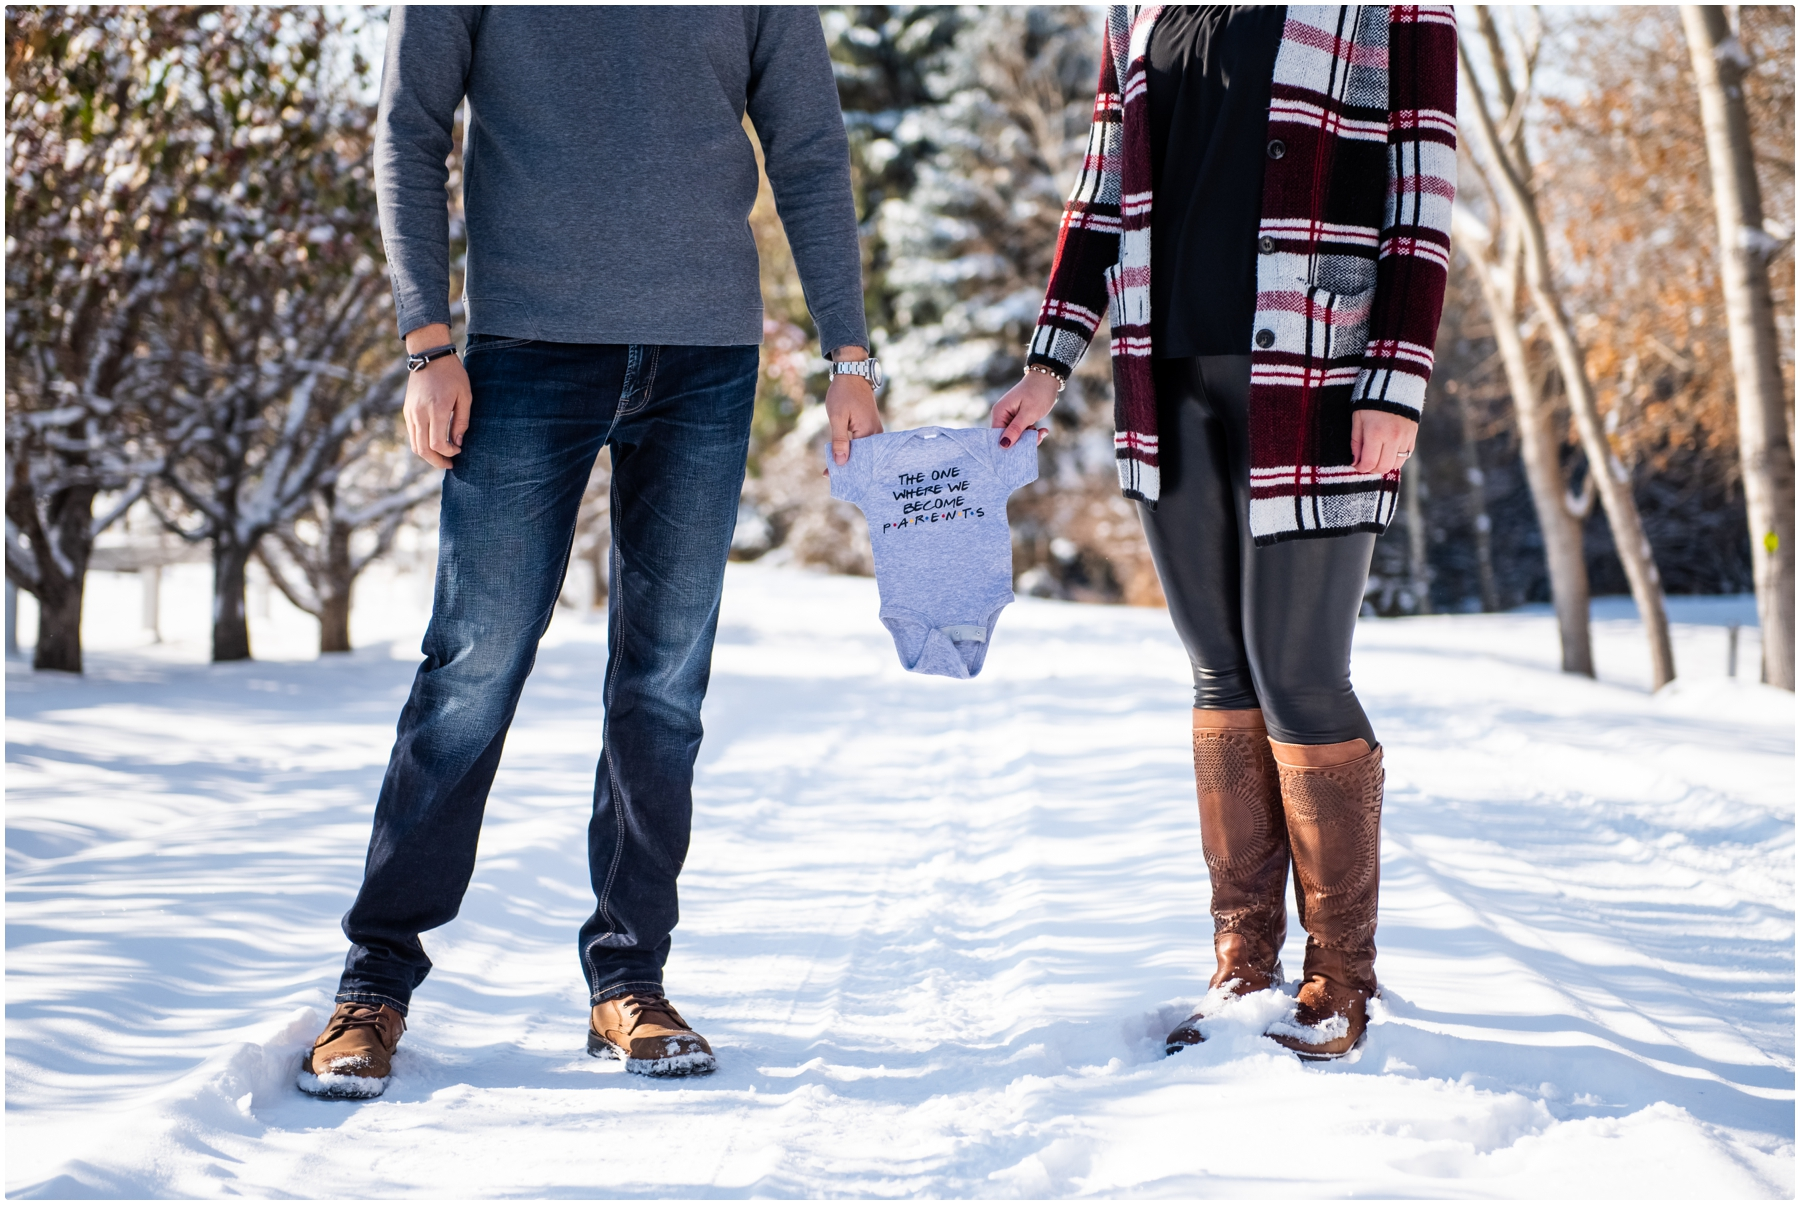 Calgary Pregnancy Announcement Photos